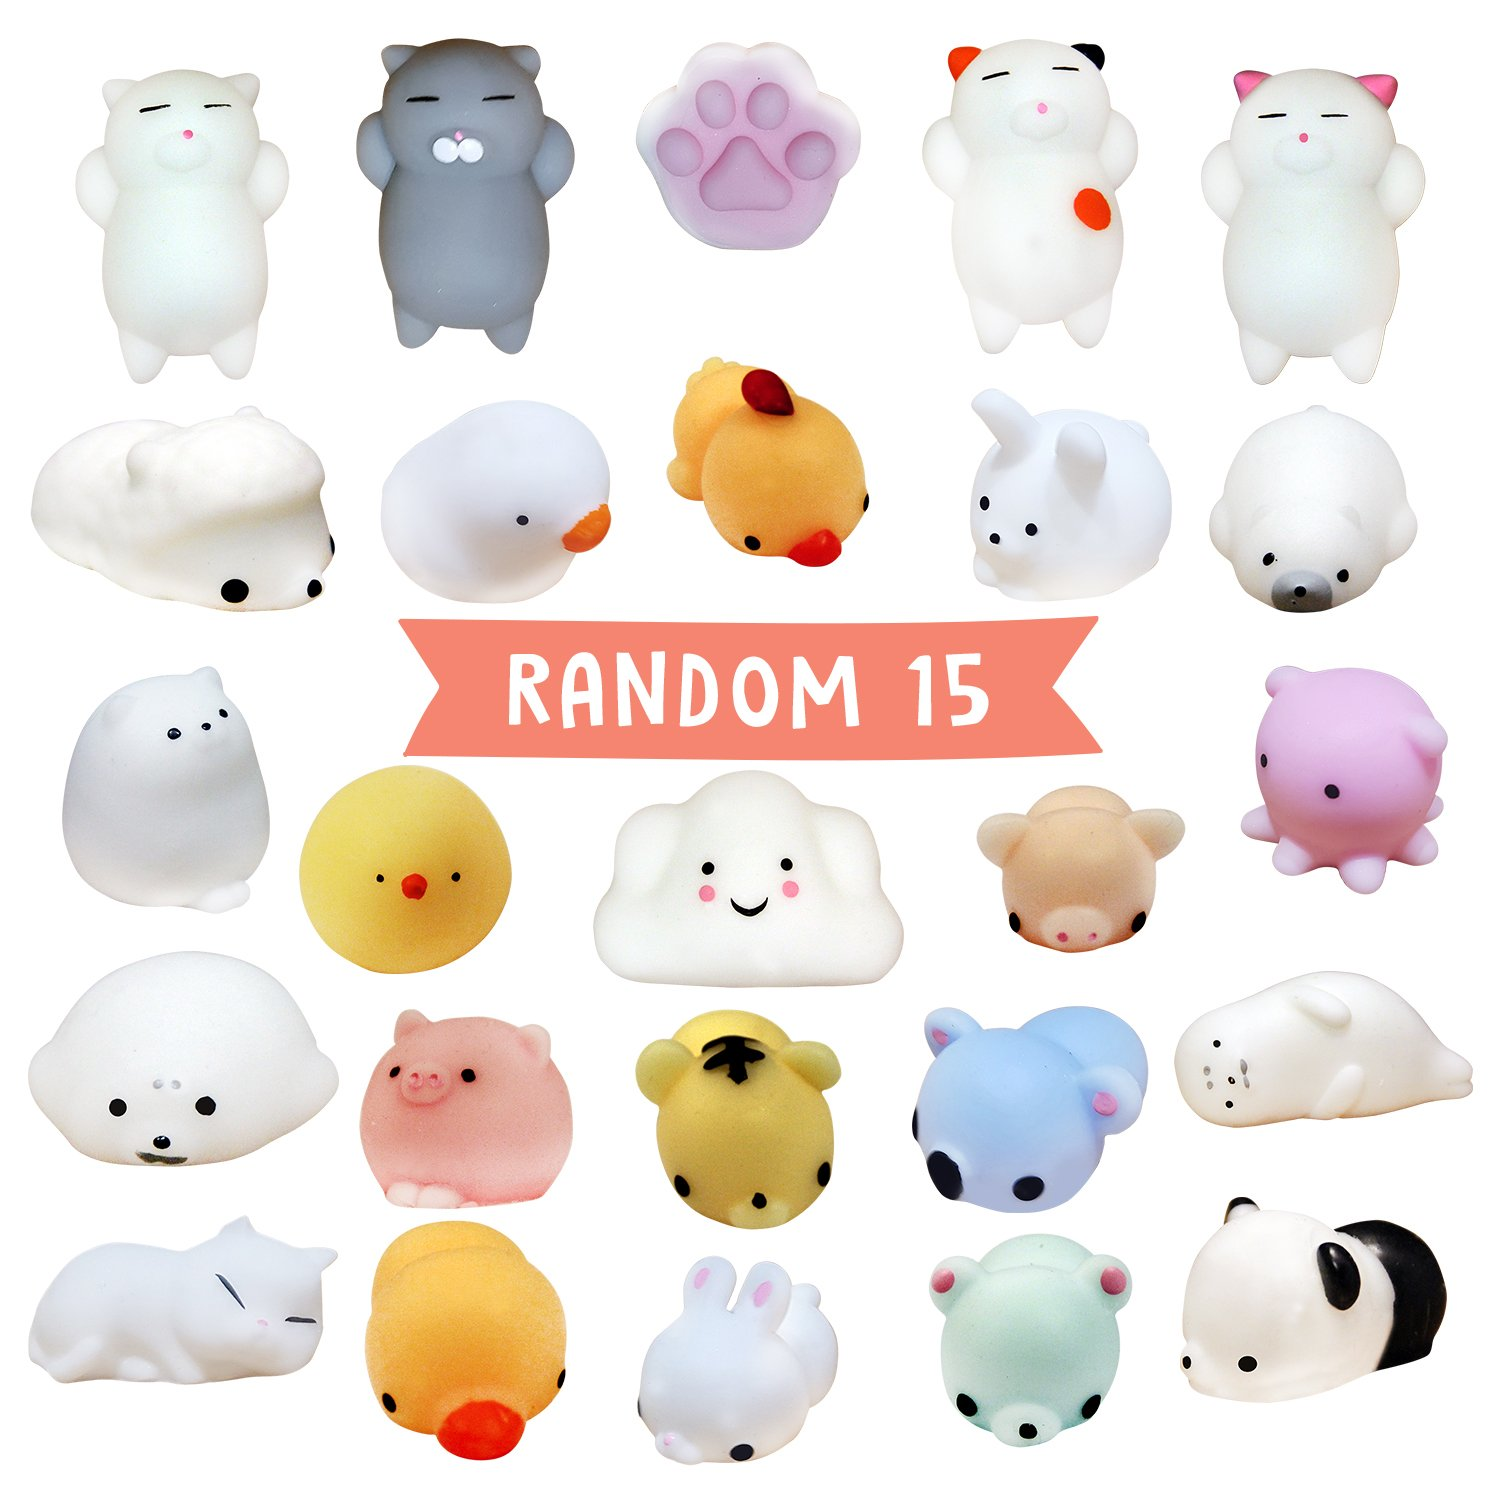 NEW: Squishies 15 pcs random pack [EXTRA Squishy] Super Cute Moshi Kawaii Animals: Seal, Panda, Kitty Cats and More All in One Cheap Package – Silly DIY fun toys for Girls and Boys